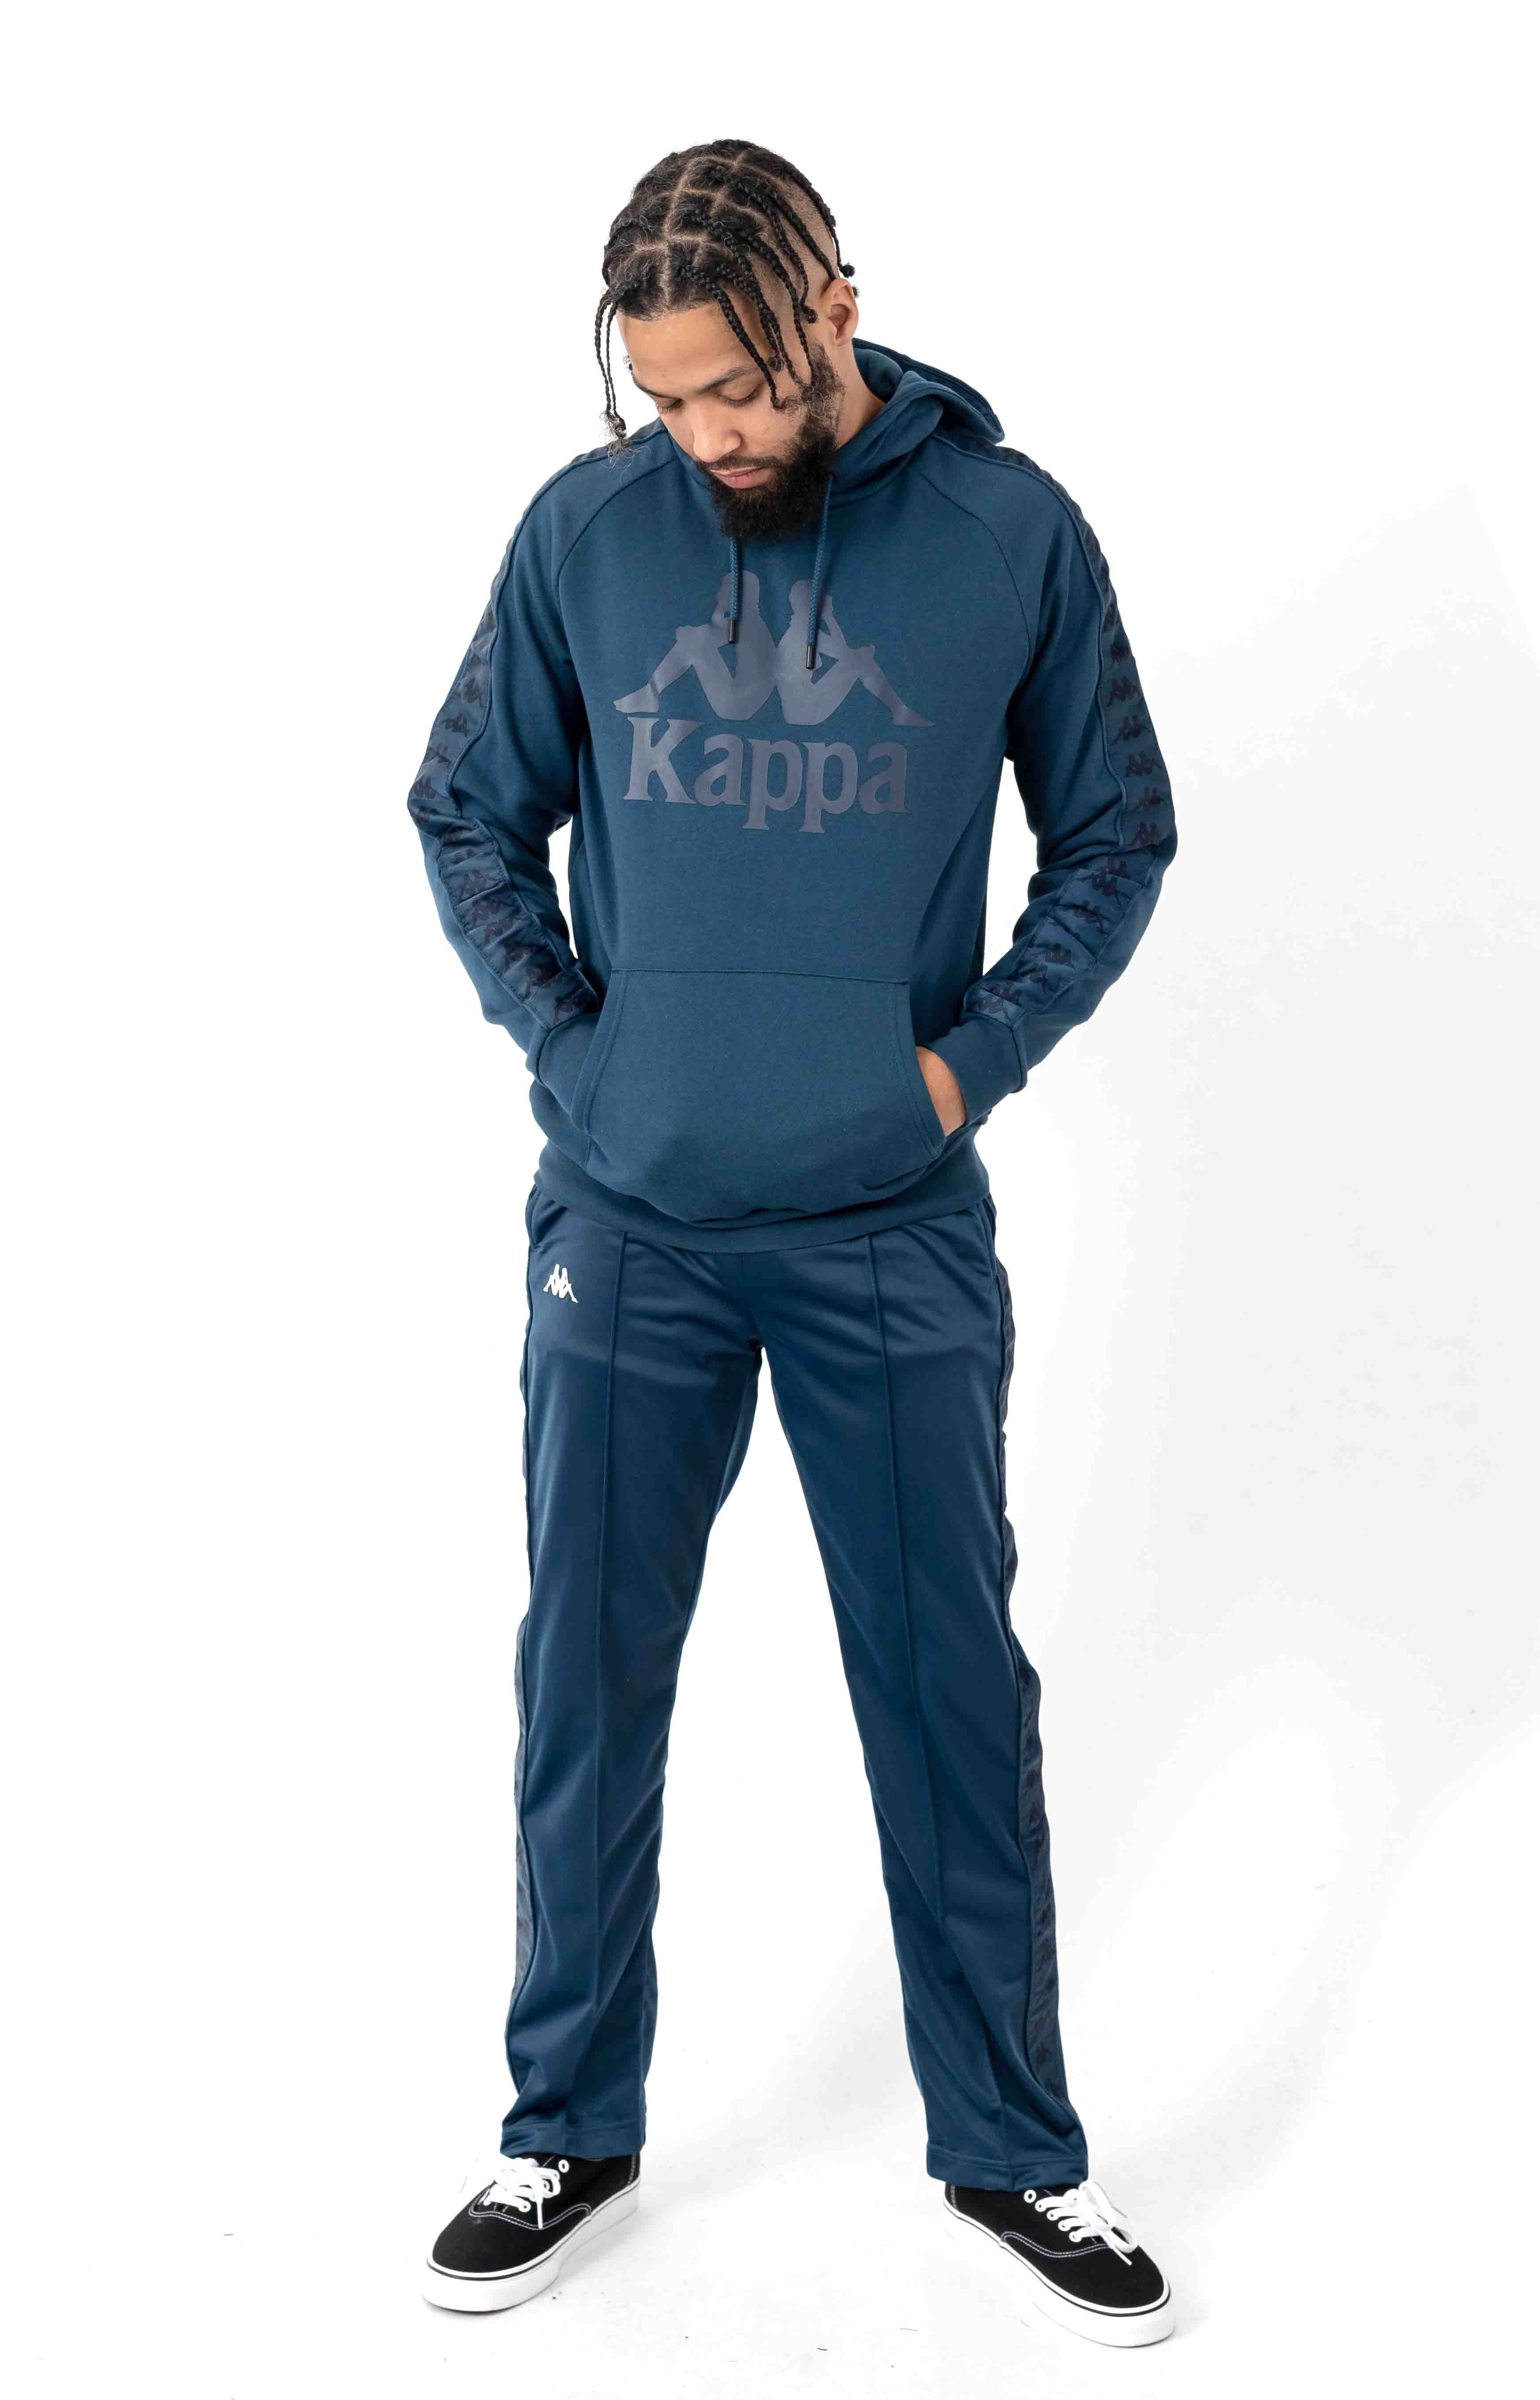 222 Banda Astoriazz Trackpant - Blue/White 4